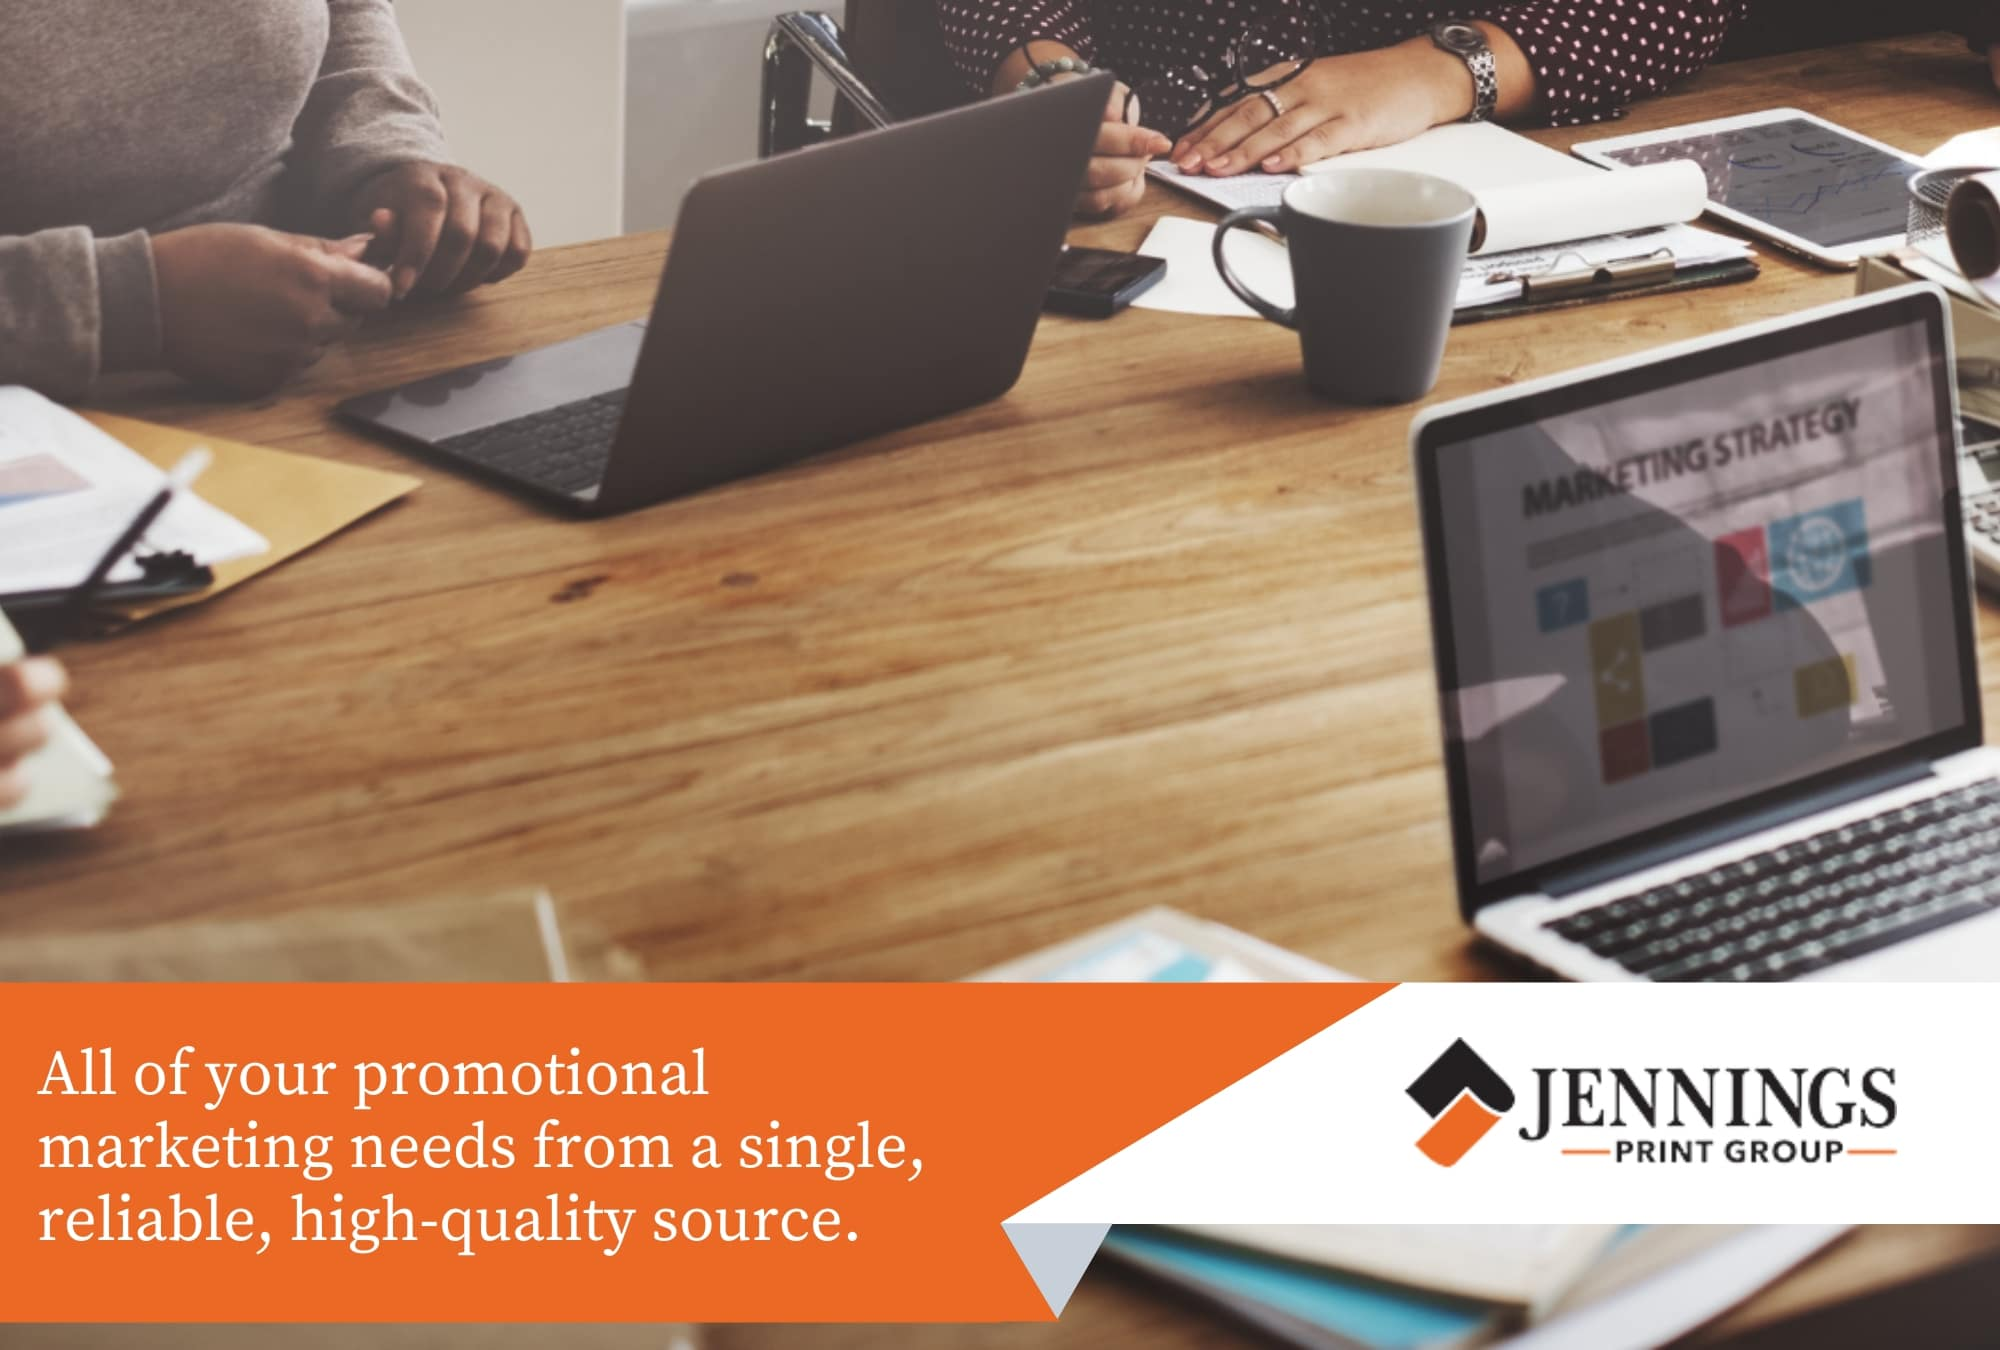 jennings print provide all your promotional marketing needs